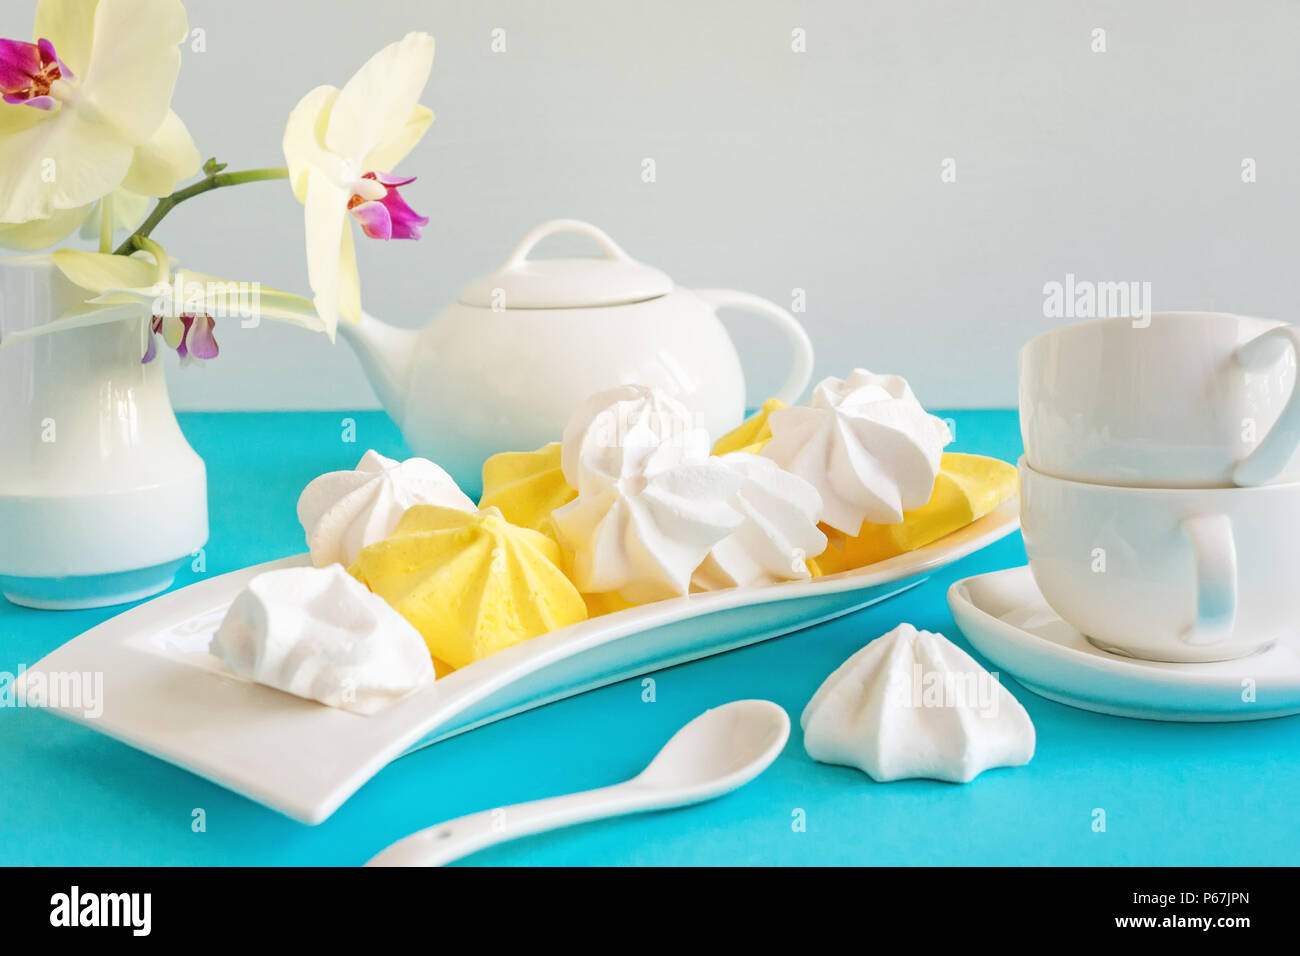 White and yellow meringue on blue background in tea serving with white kettle. Stock Photo